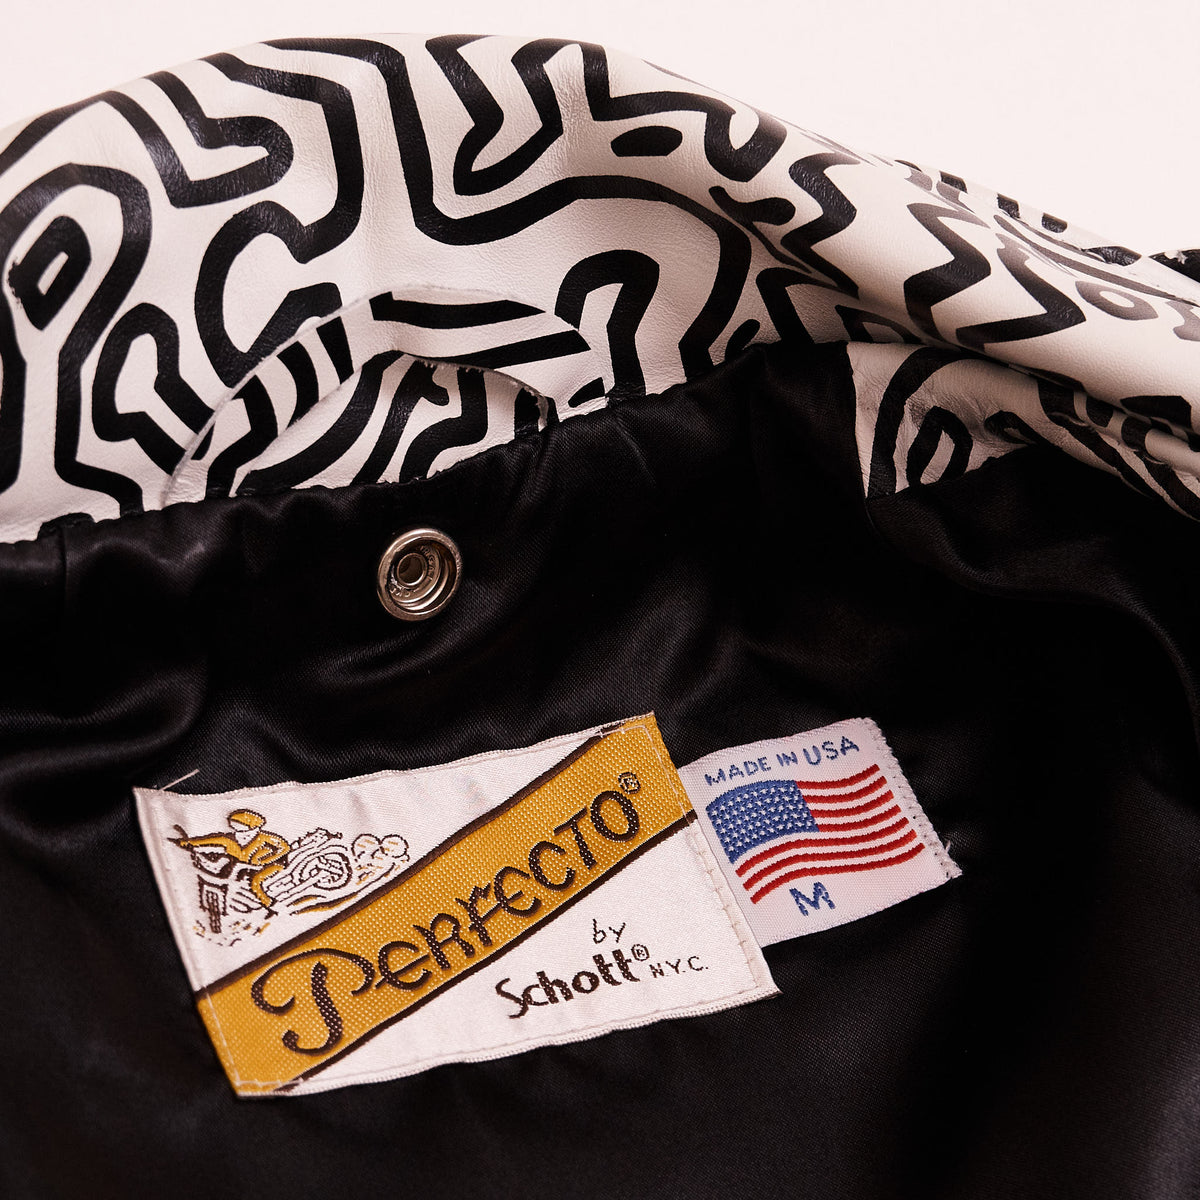 Schott NYC Ladies Keith Haring x Schott Perfecto Leather Jacket